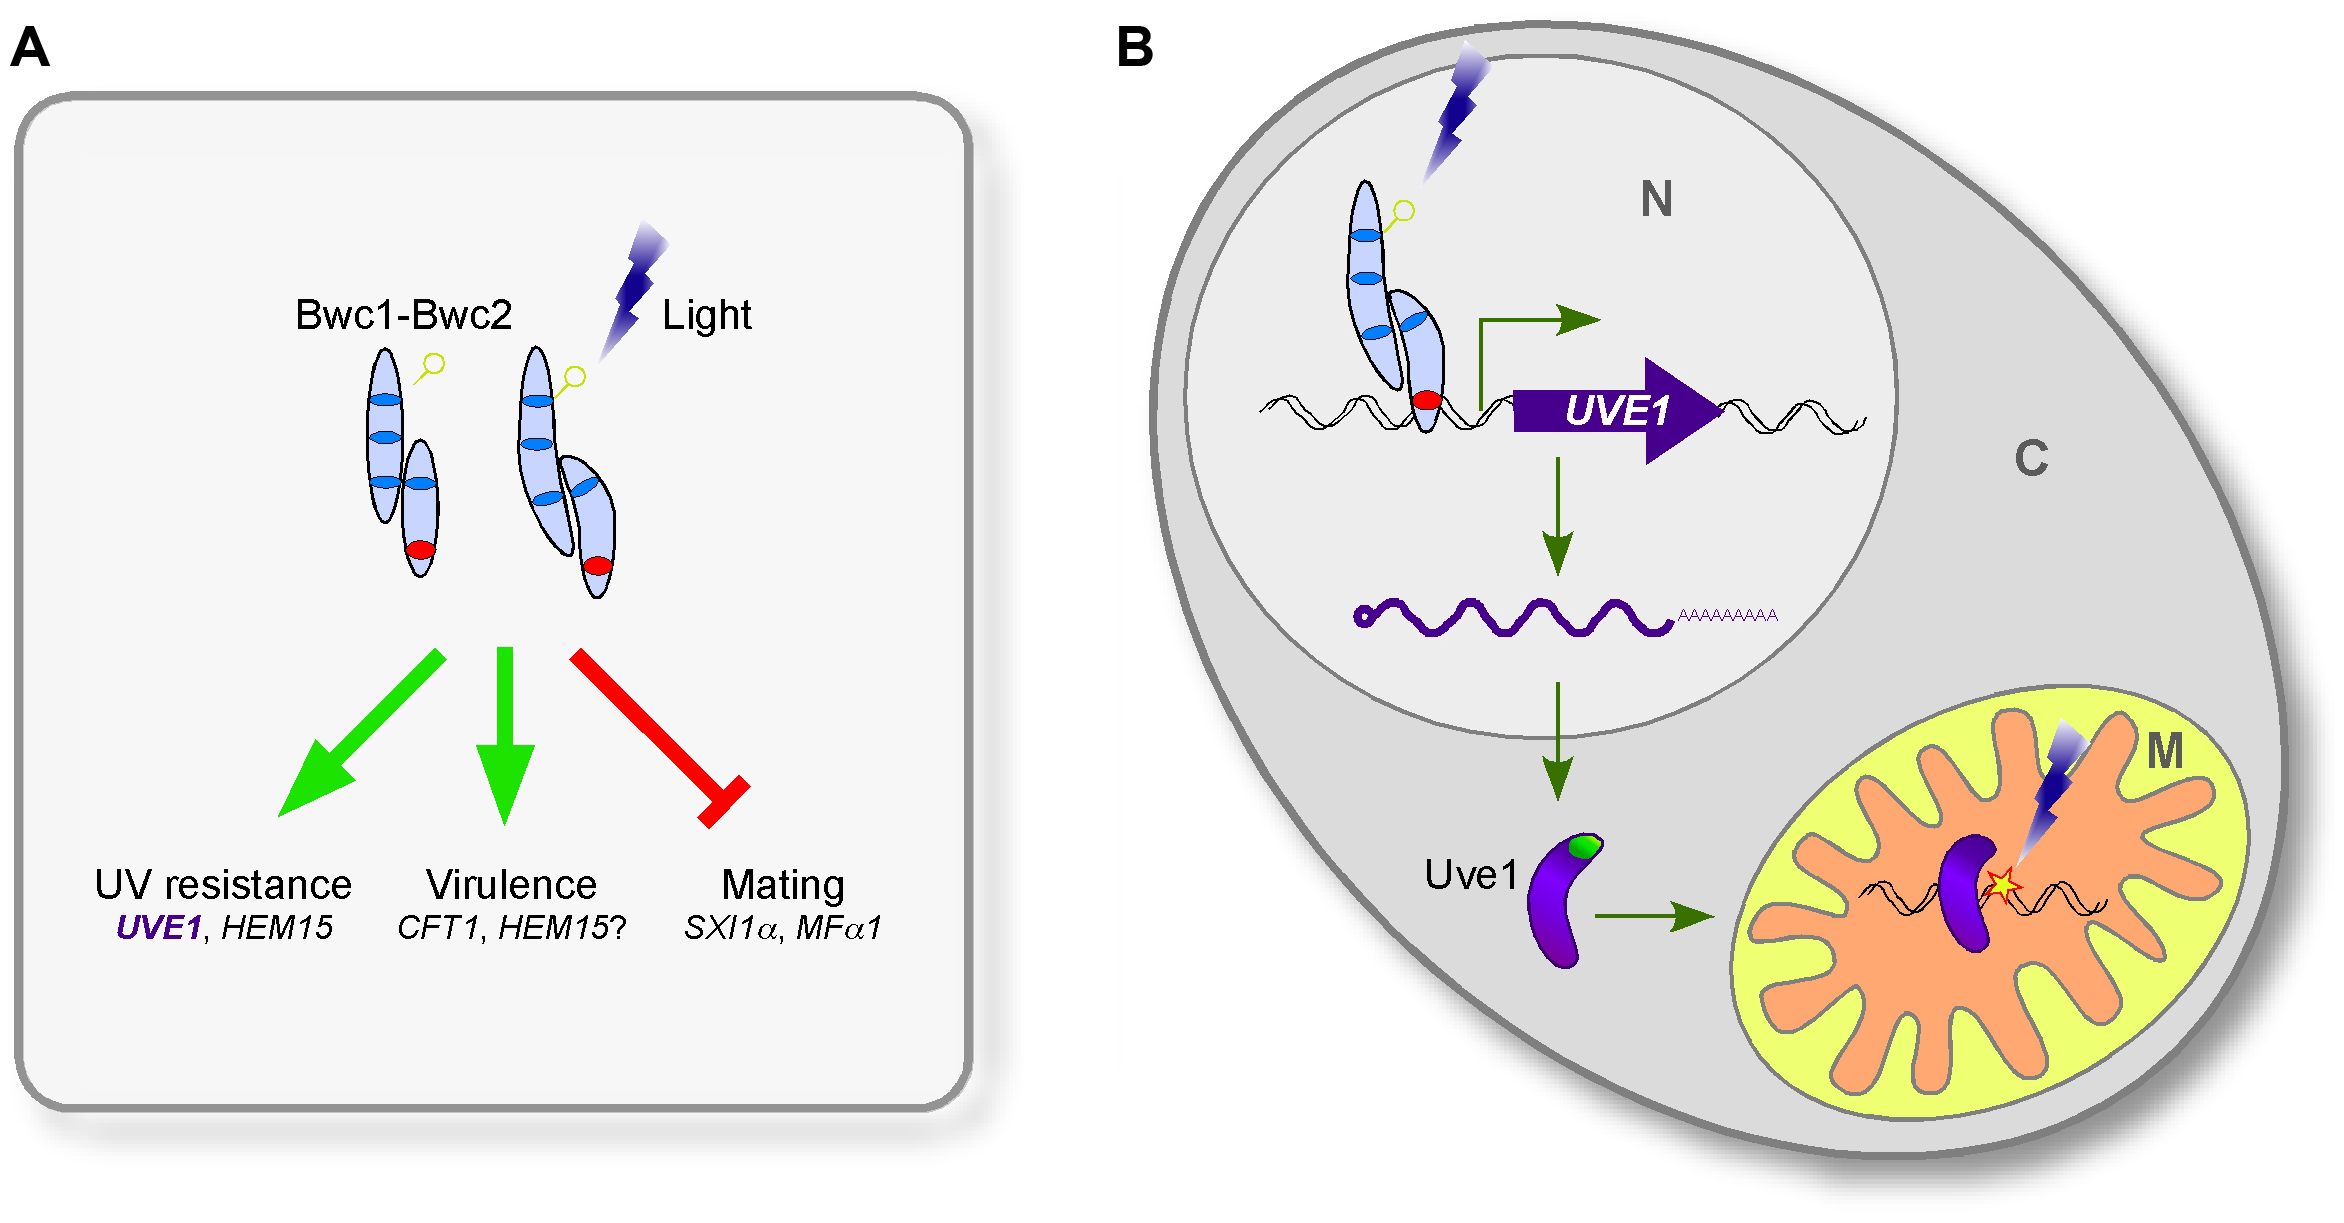 The involvement of Uve1 in the photosensory response of <i>C. neoformans</i>.